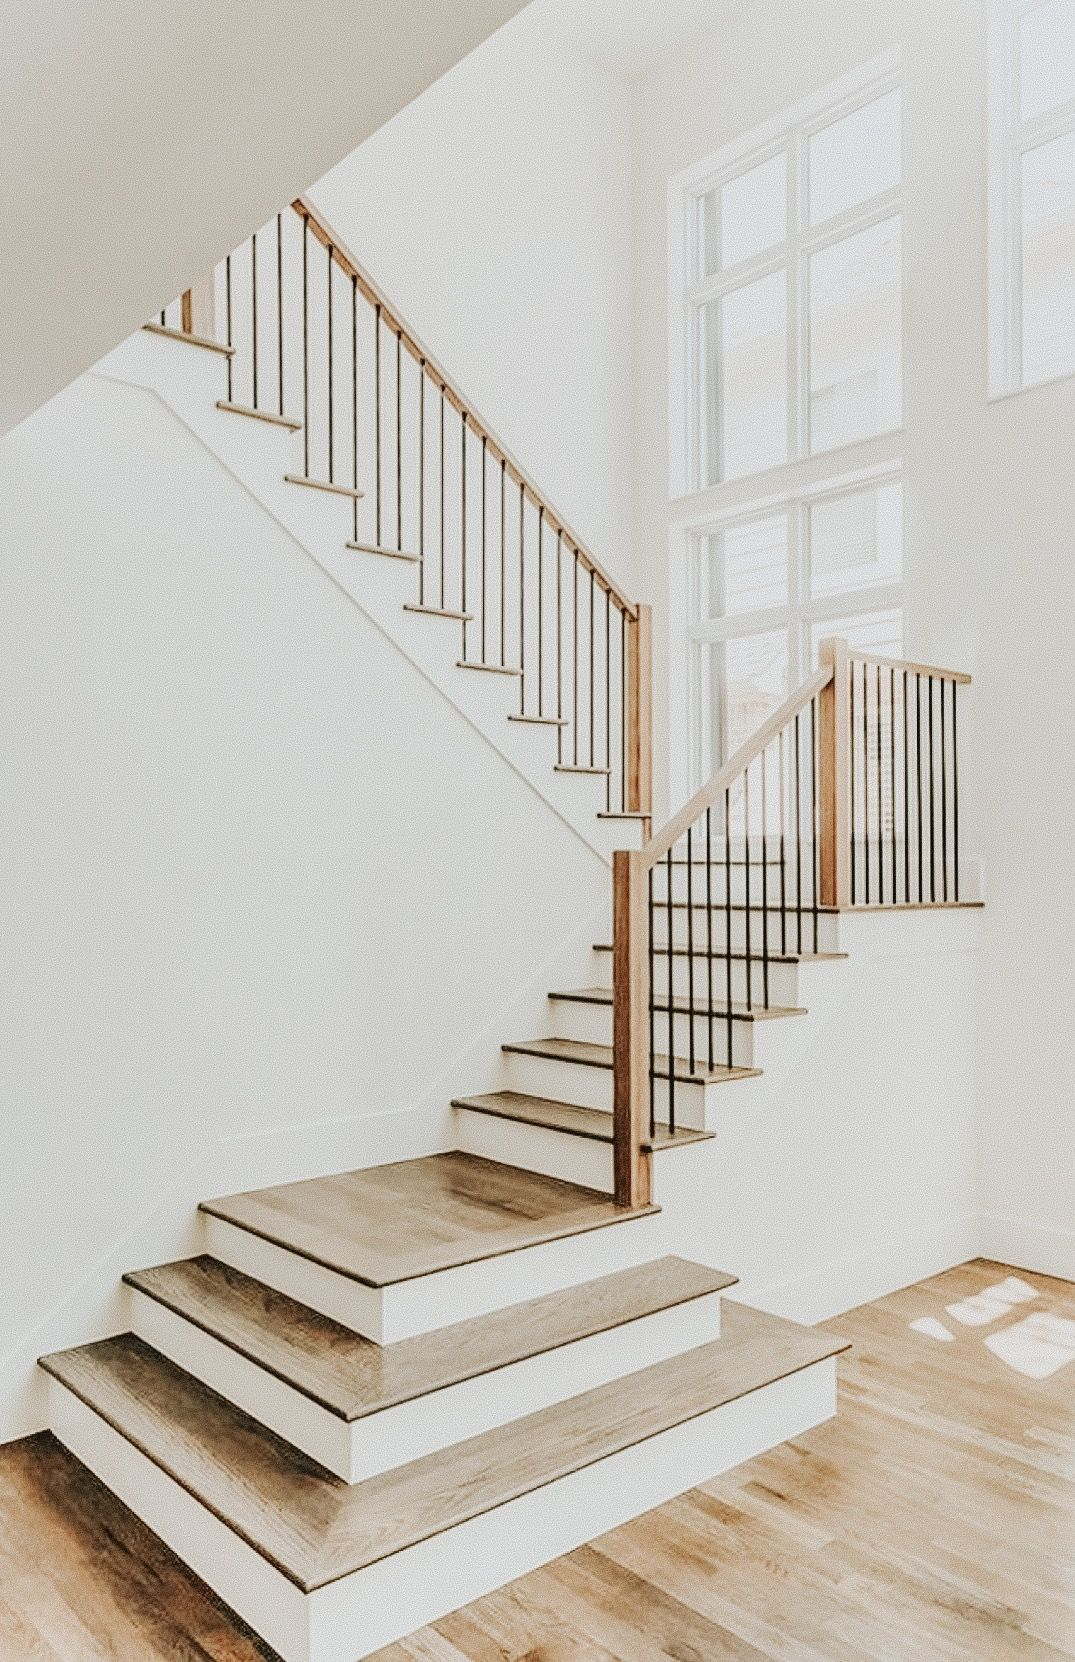 Pin By Chandler Cleveland On Dream House Modern Stair Railing Staircase Design Wood Railings For Stairs